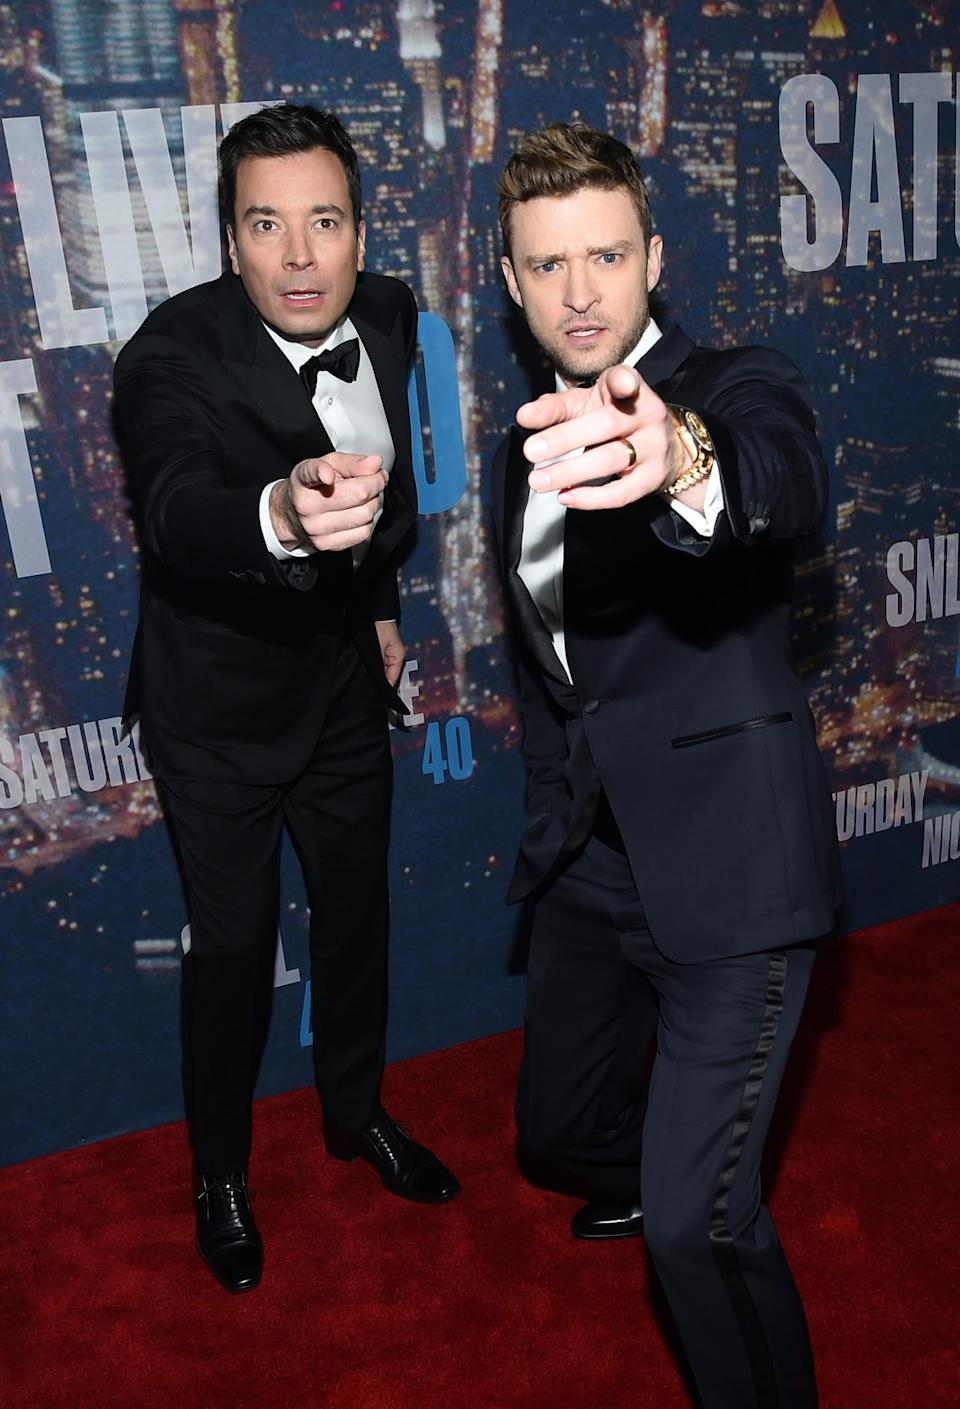 Jimmy Fallon and Justin Timberlake show off their bromance on the red carpet in sharp suits.